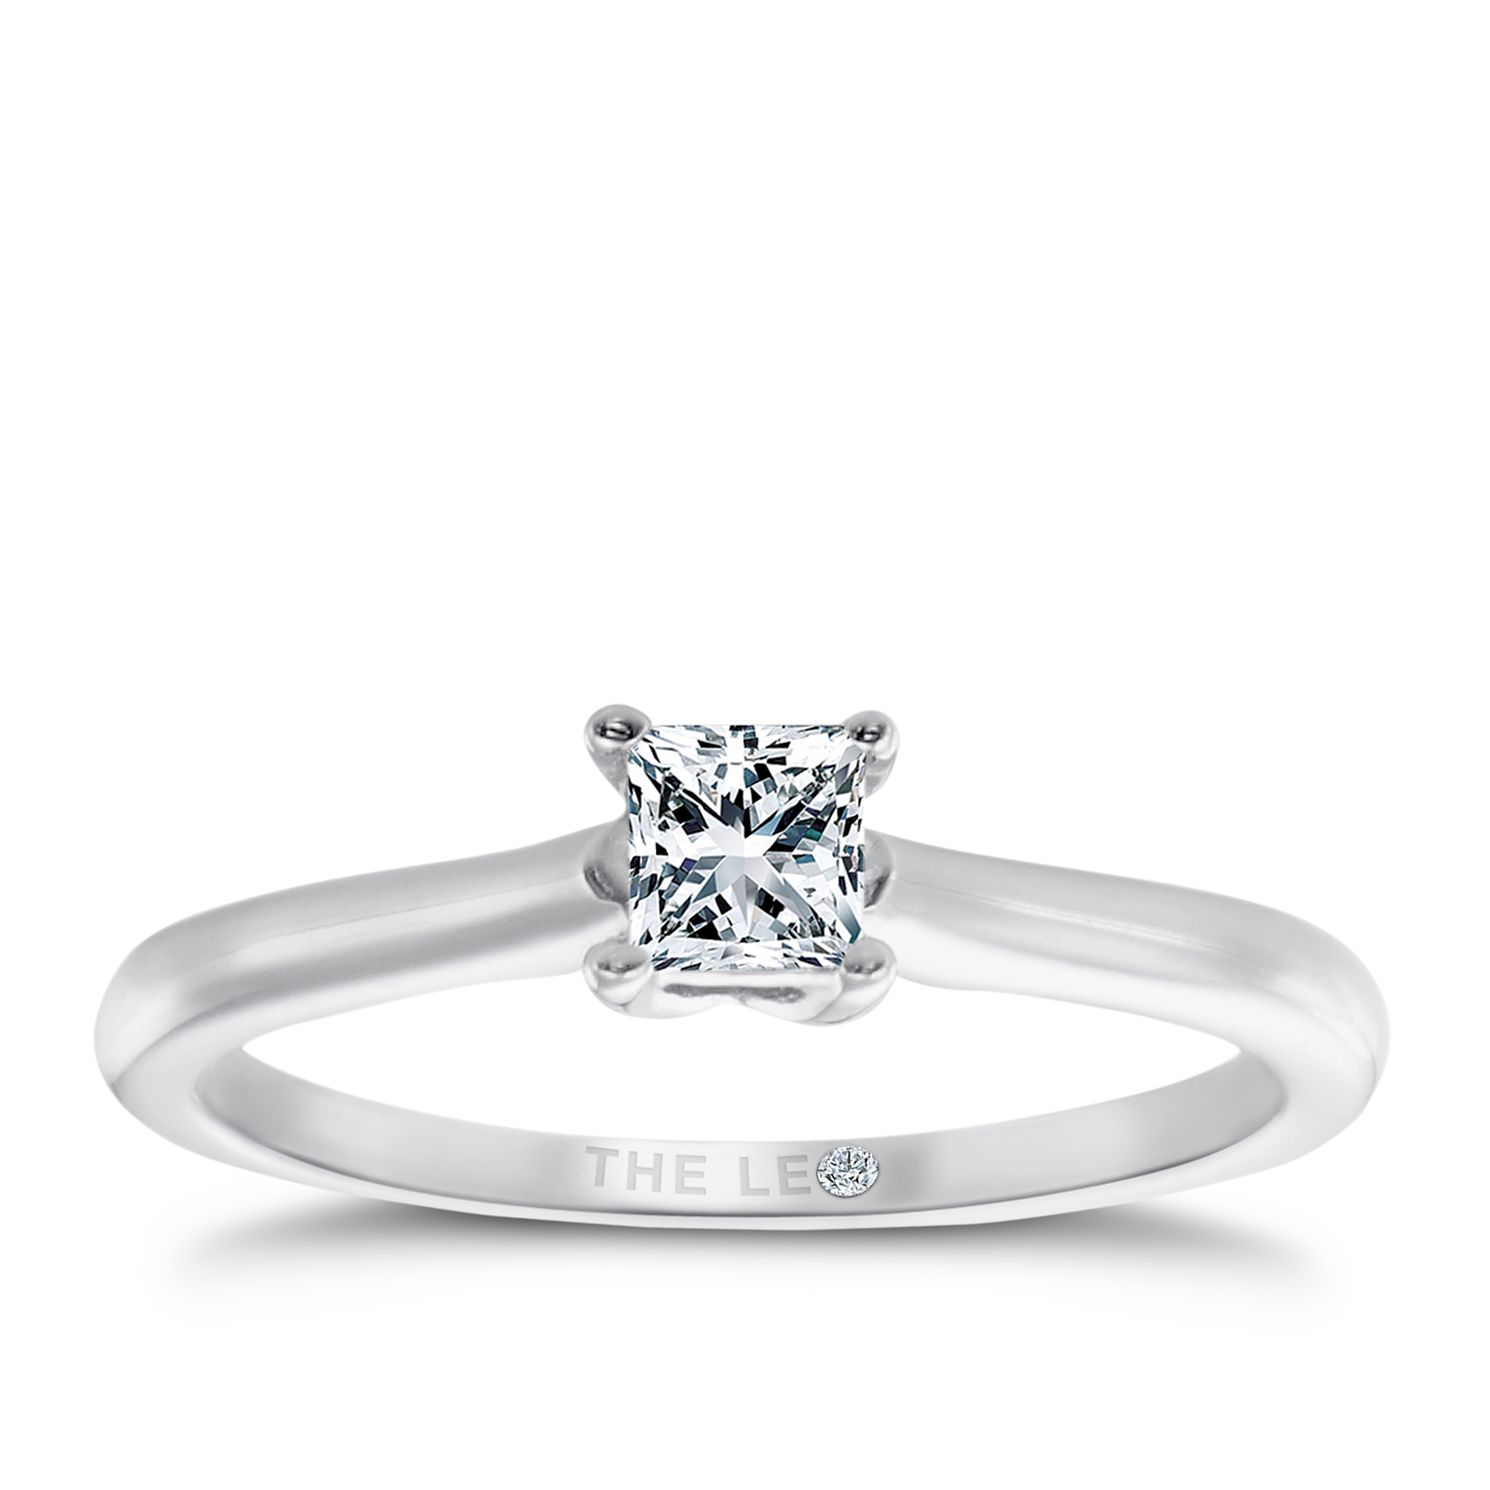 rings d jones product cubic solitaire ernest silver diamond ring webstore engagement zirconia leo number